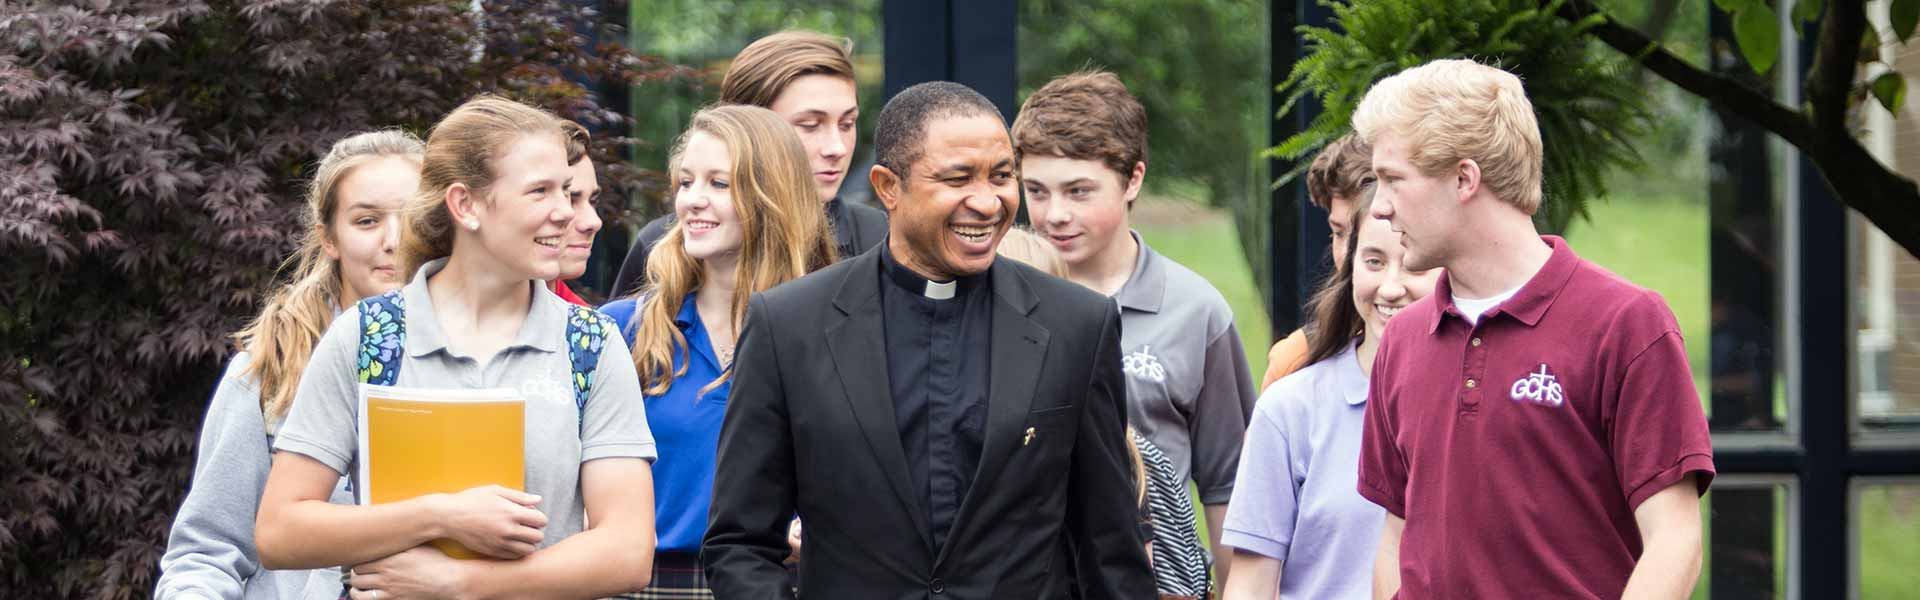 GibaultCatholicHighSchool-Private-IL-Students-with-Priest-Banner-2021